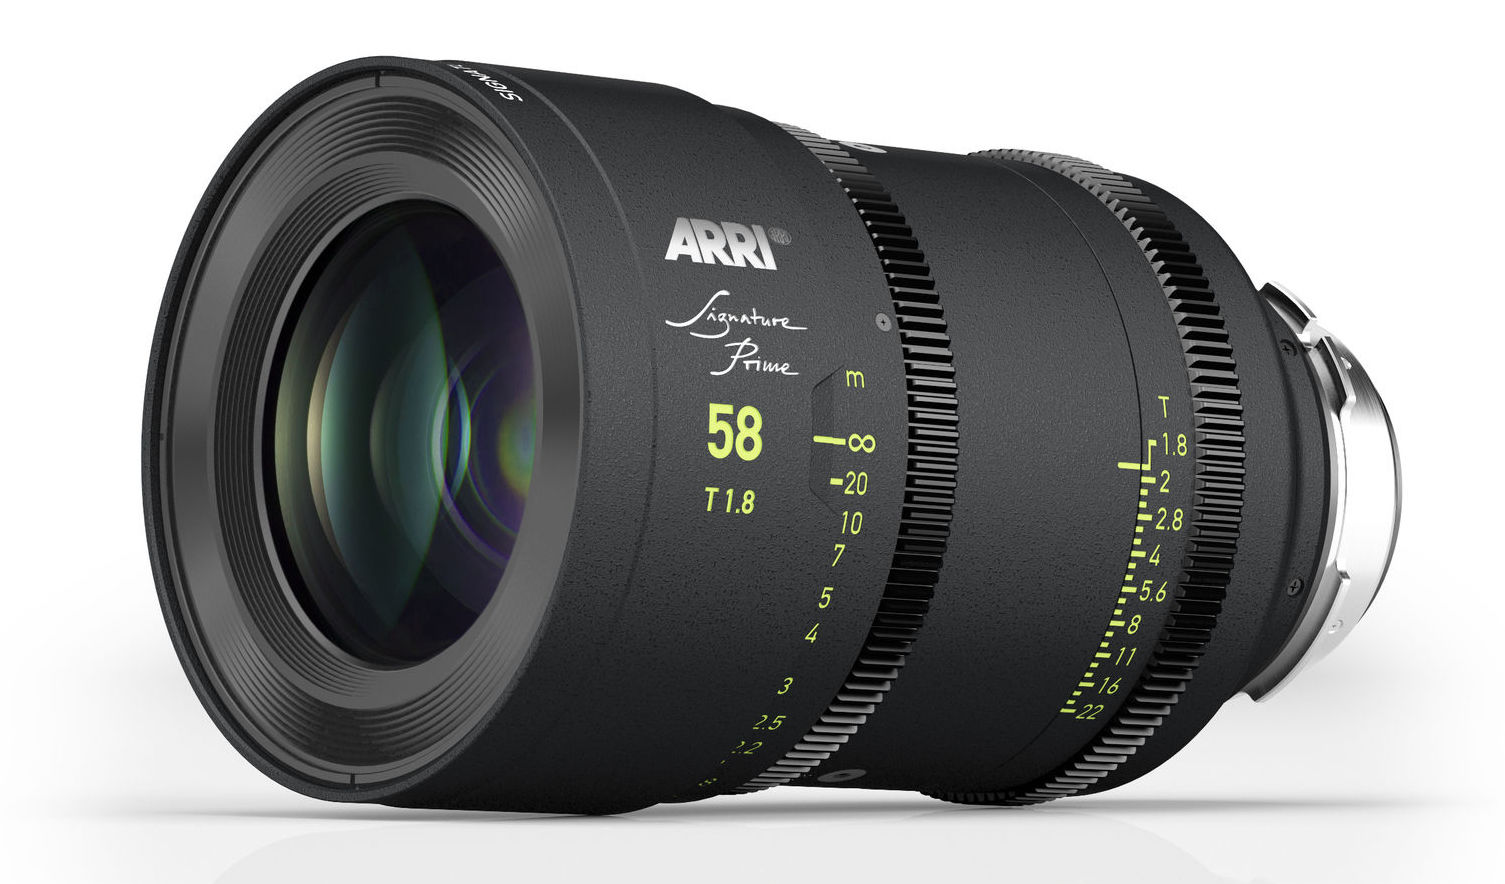 Arri Signature Prime lens 58mm